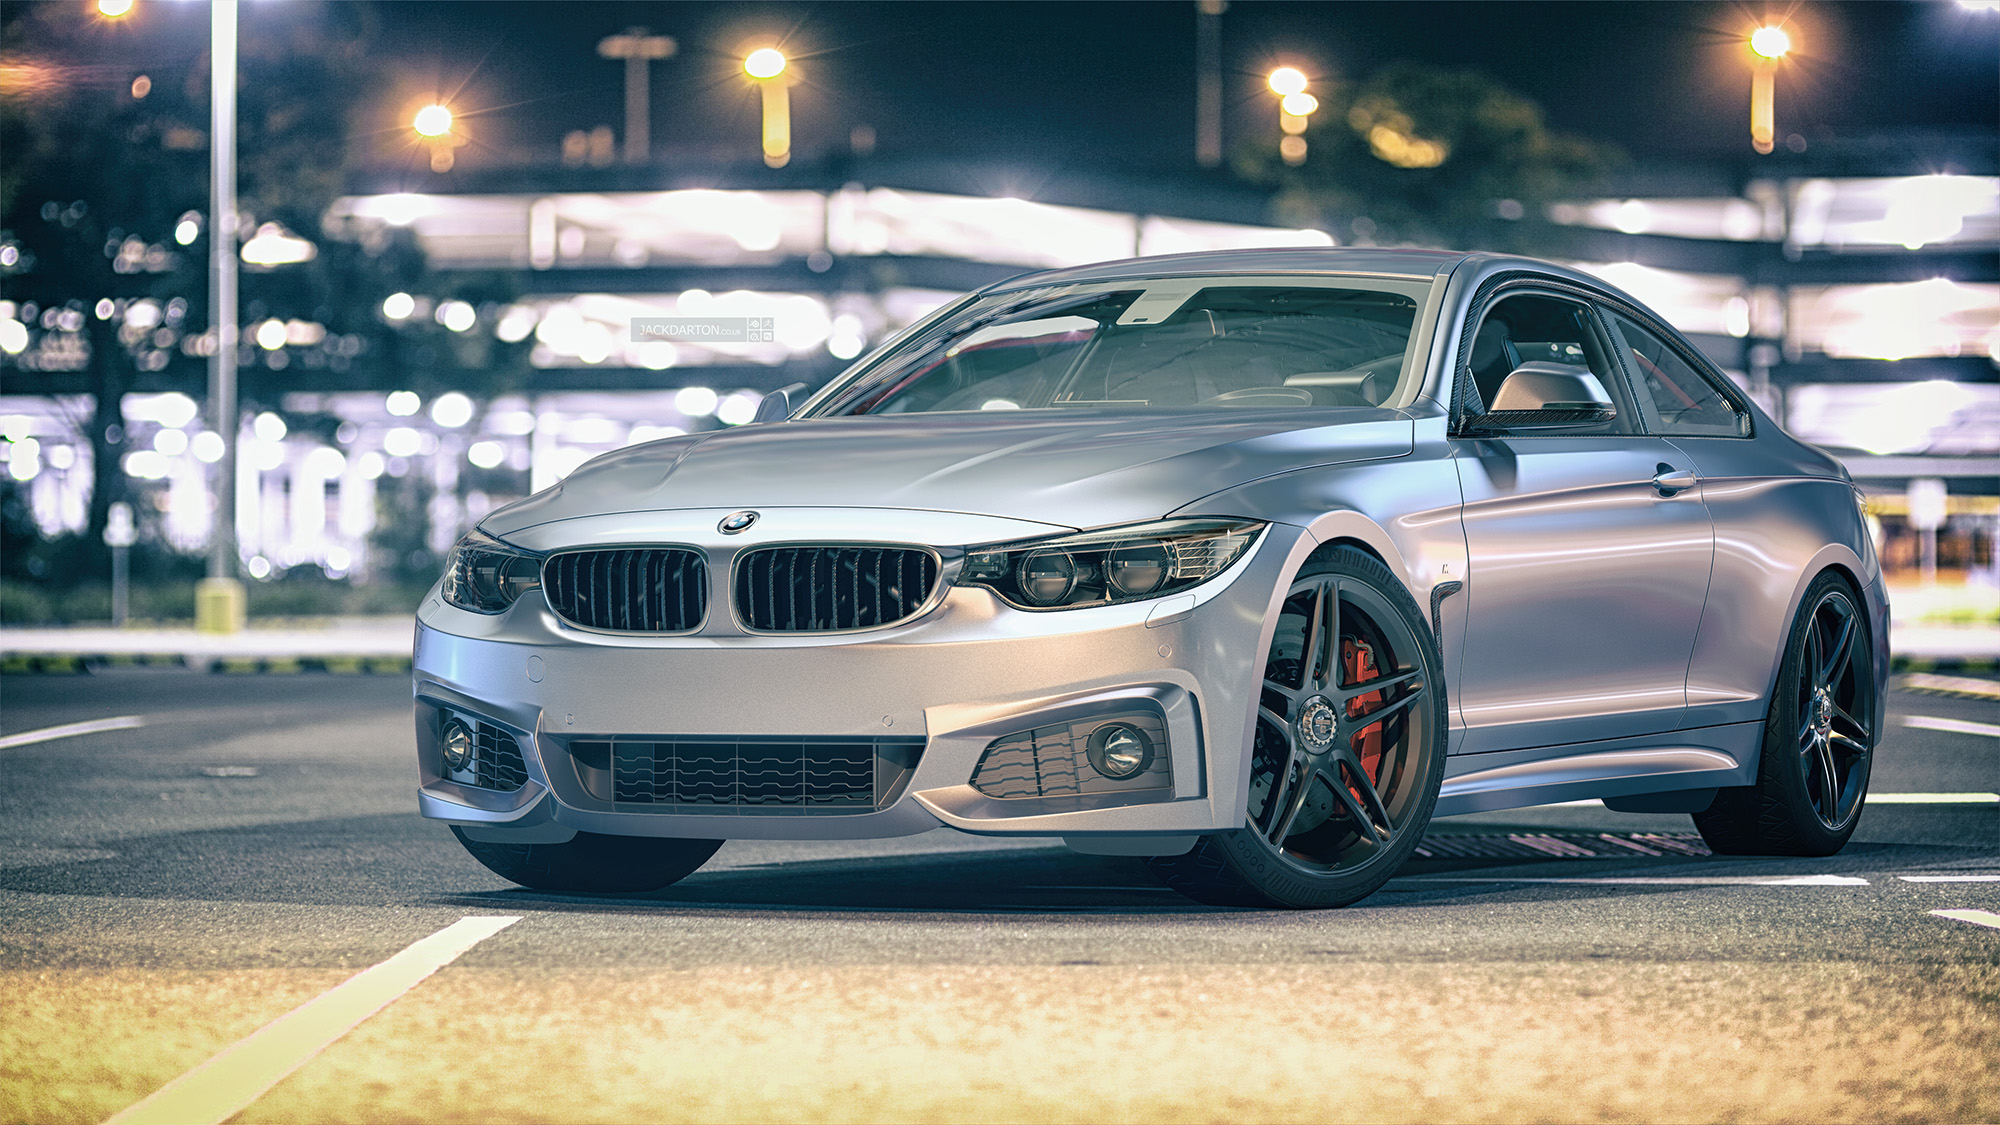 bmw 4 series m sport by jackdarton blendernation. Black Bedroom Furniture Sets. Home Design Ideas